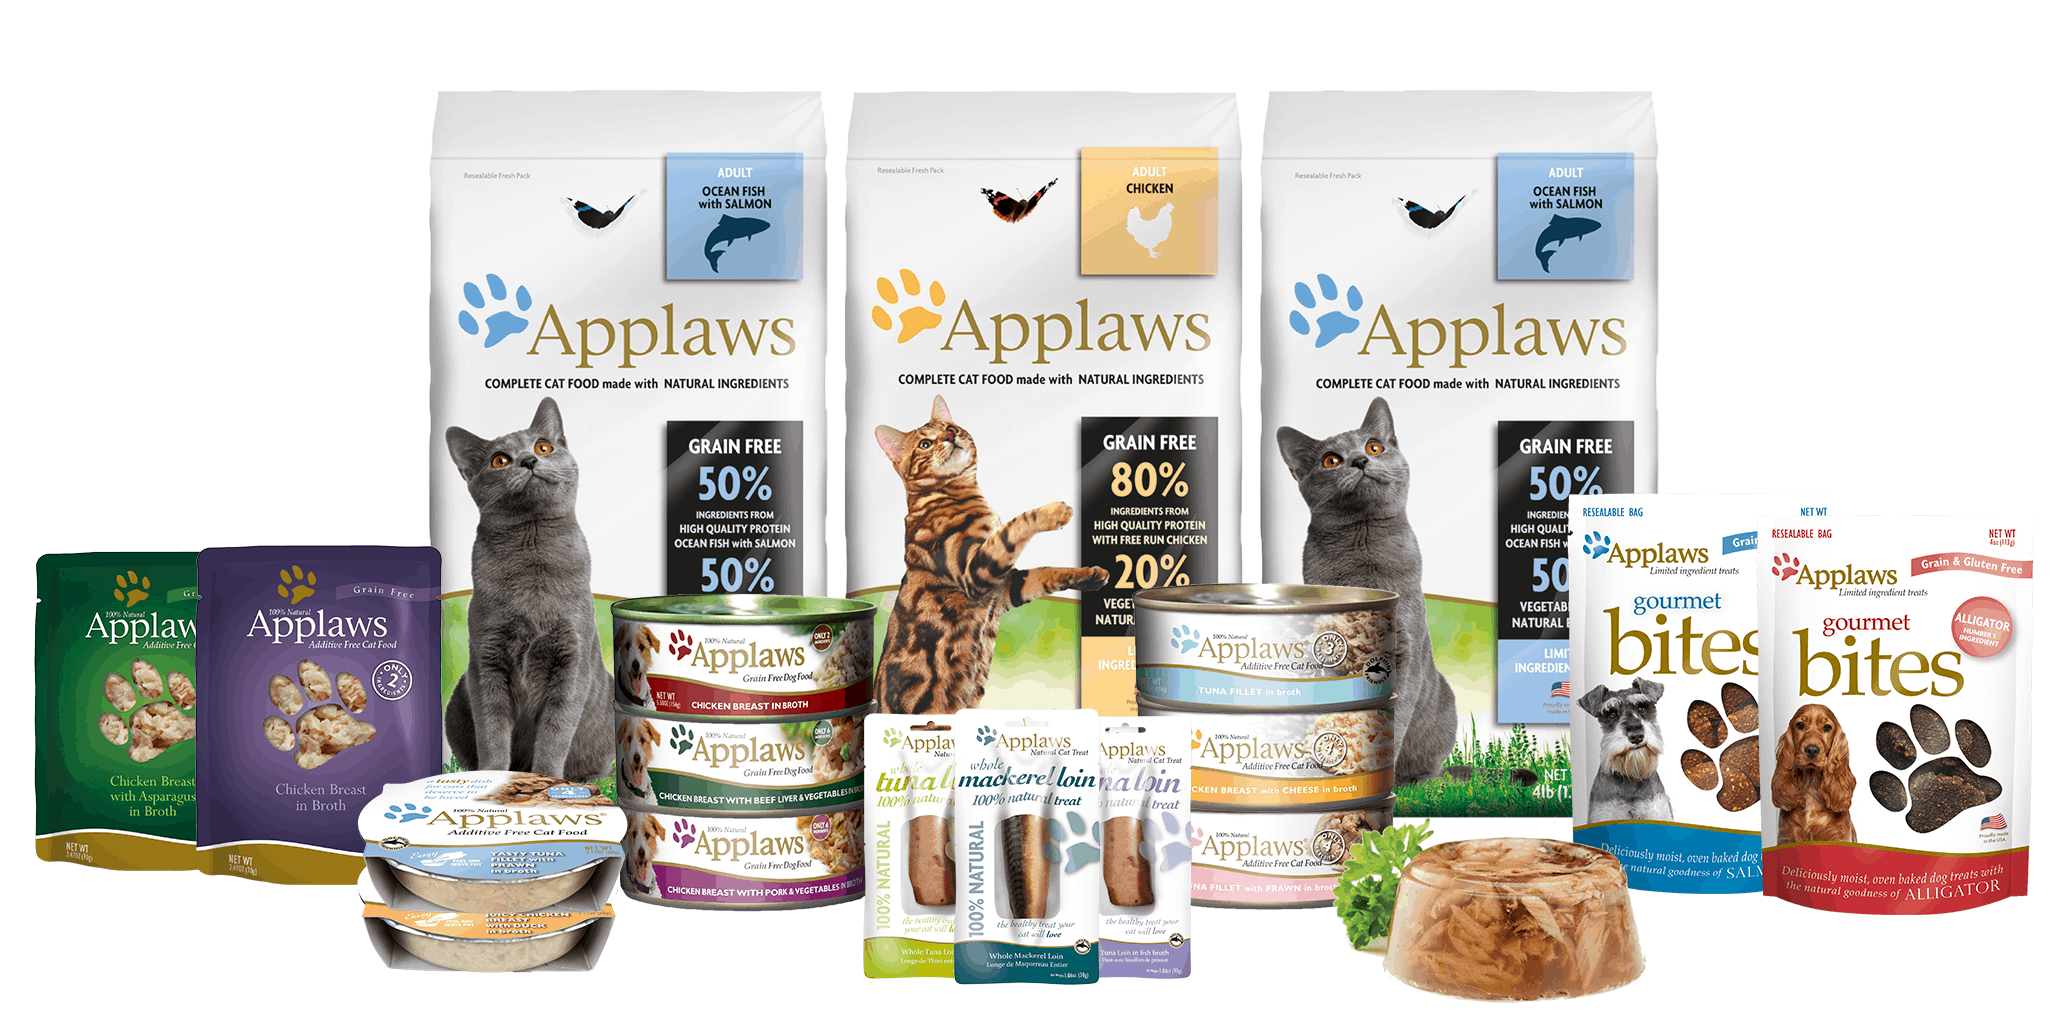 applaws cat food reviews